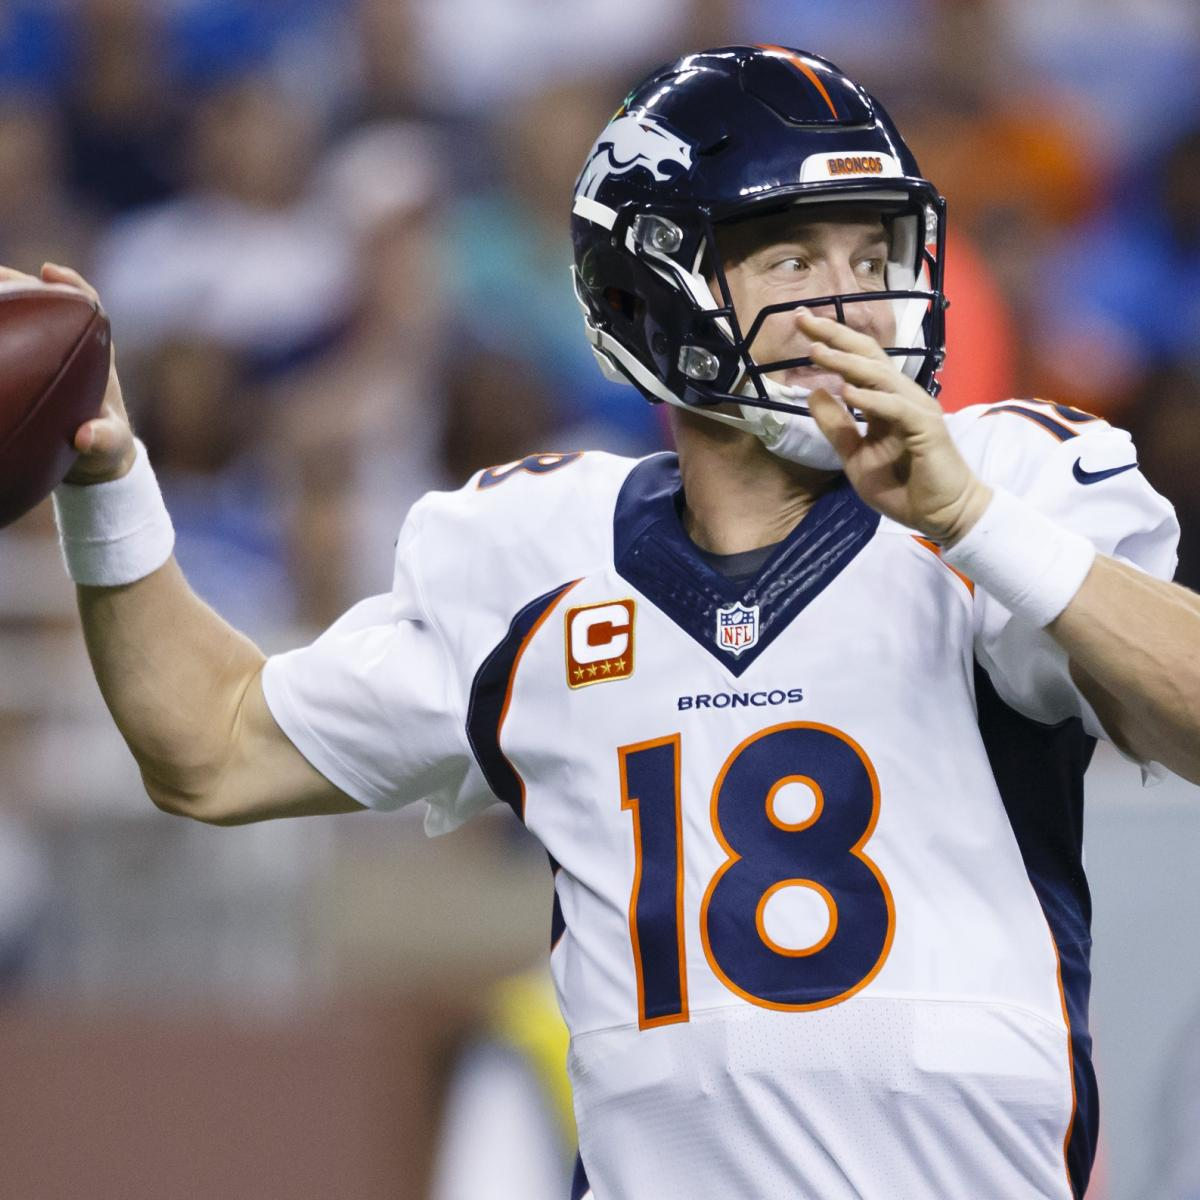 Minnesota Vikings Vs. Denver Broncos Betting Odds